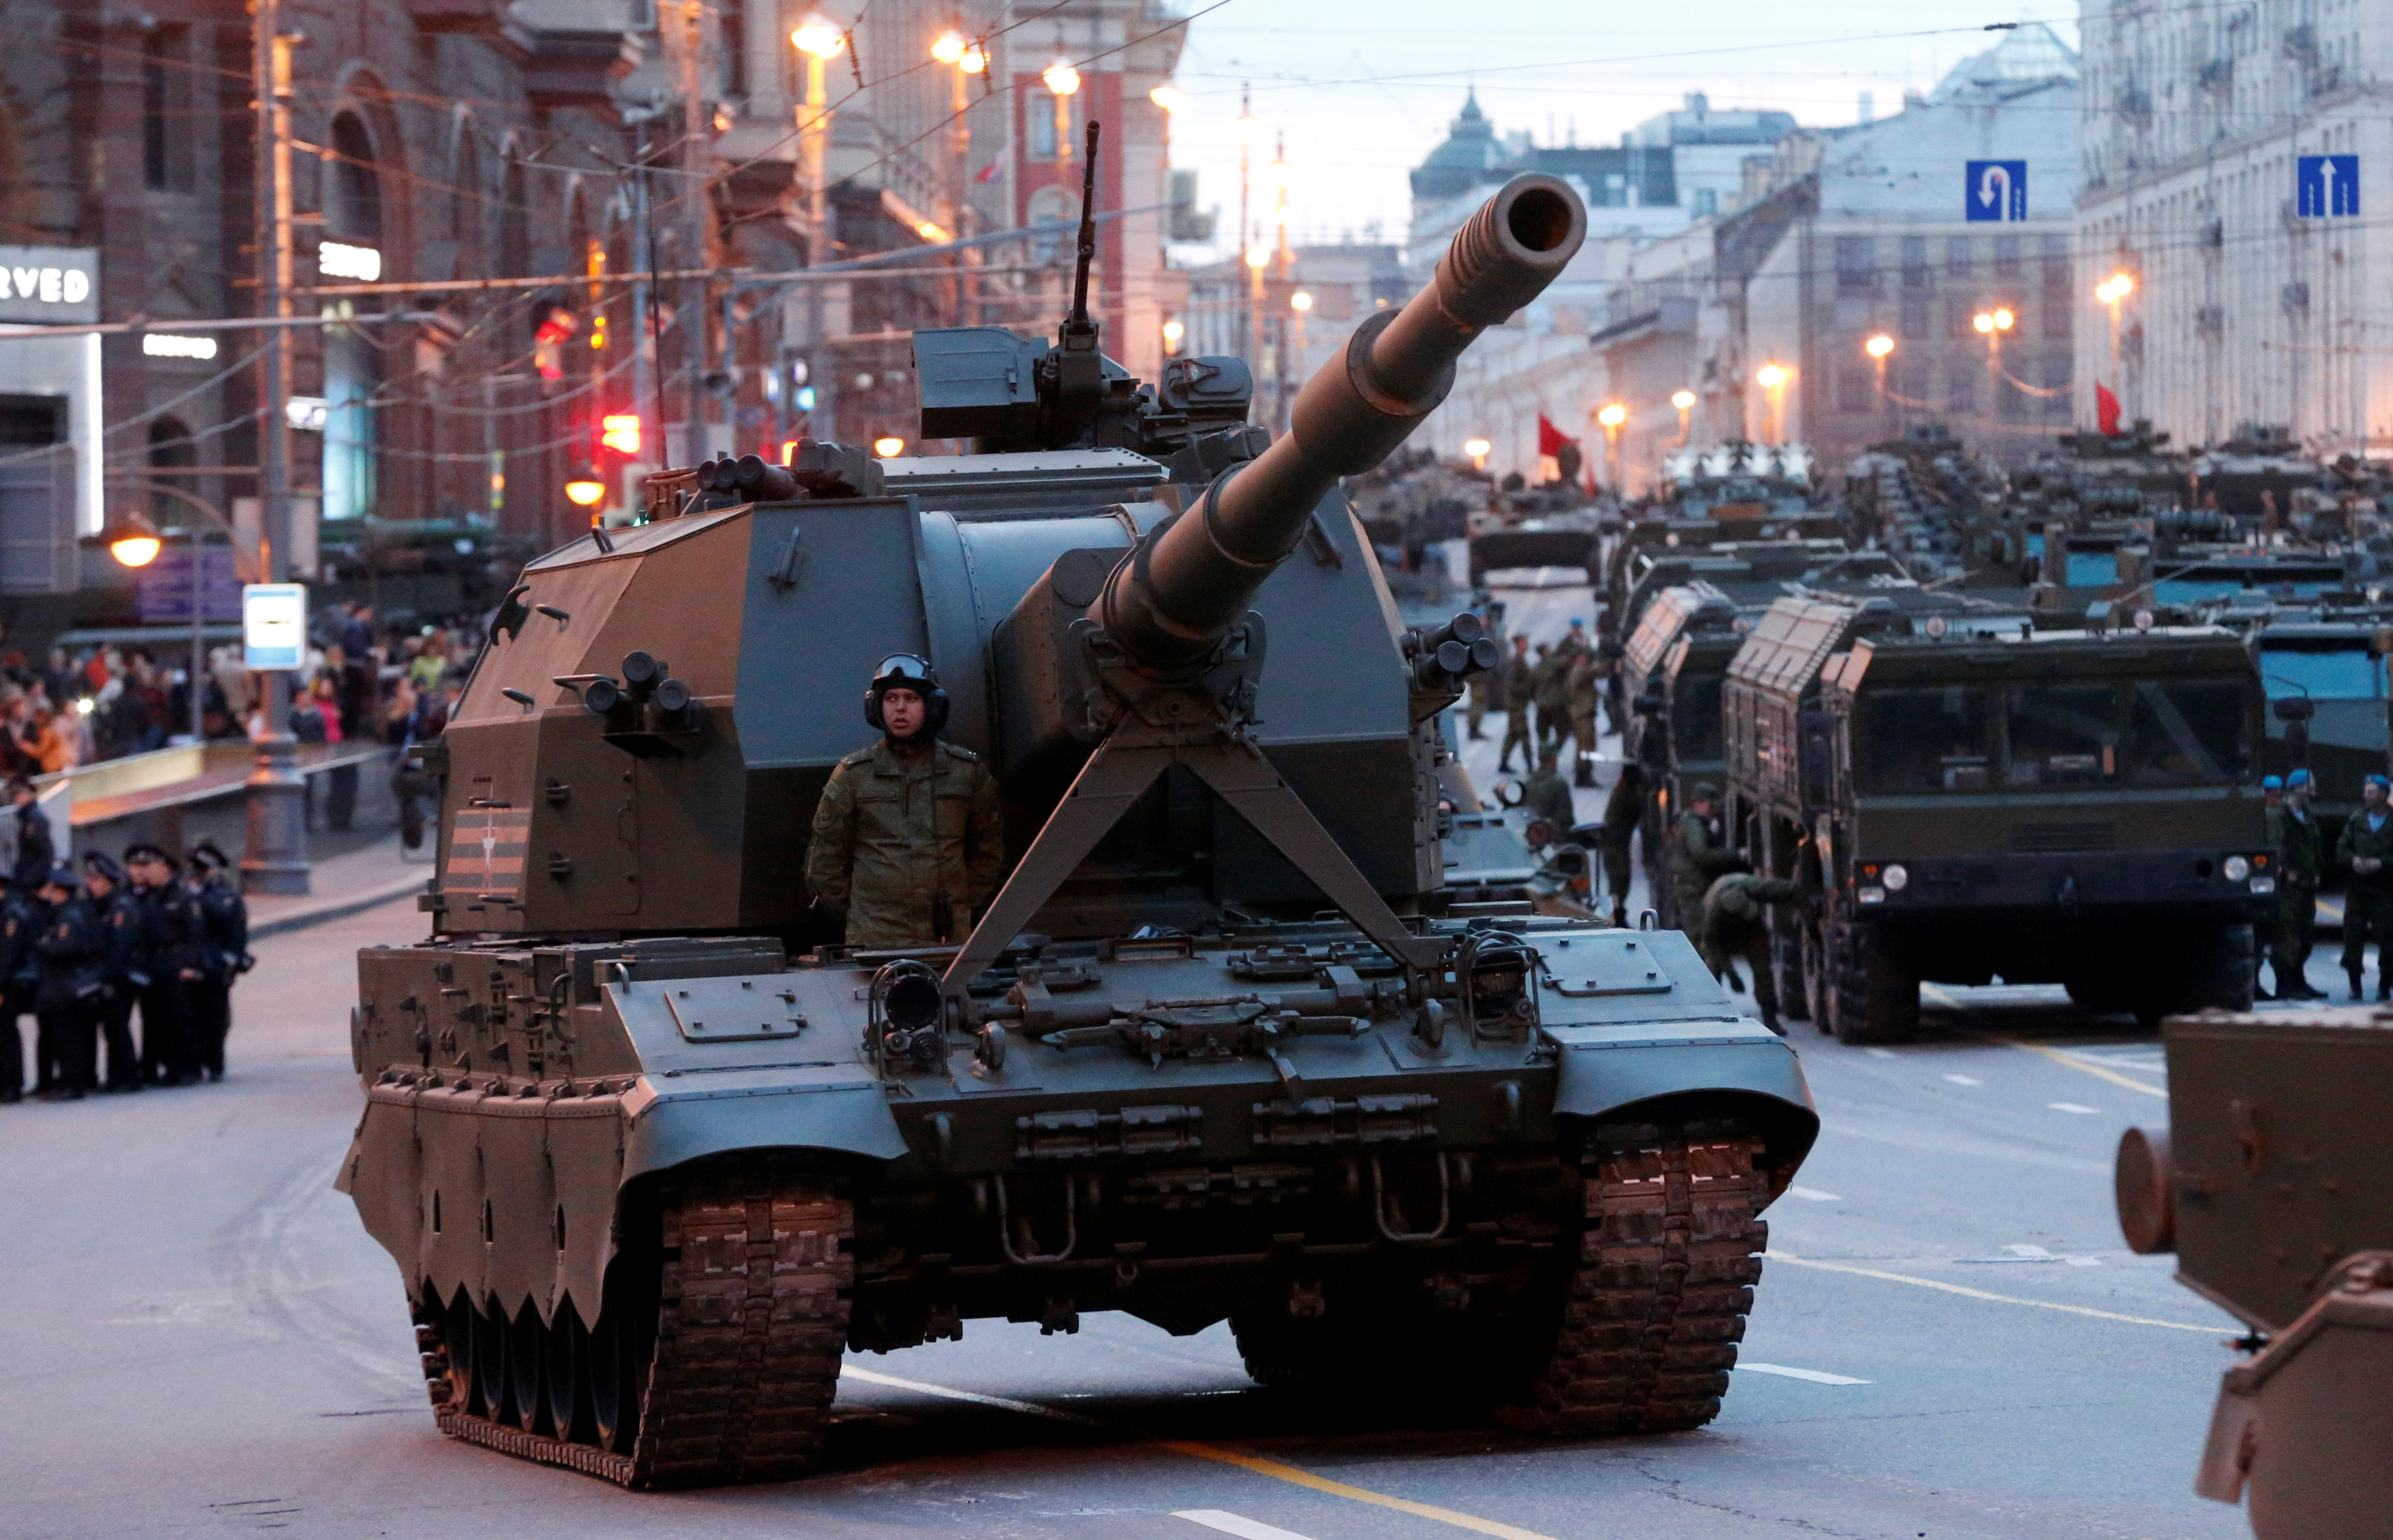 Russian military vehicles are parked in Tverskaya street before moving towards Red Square for a rehearsal for the Victory Day parade in central Moscow, Russia, April 28, 2016.